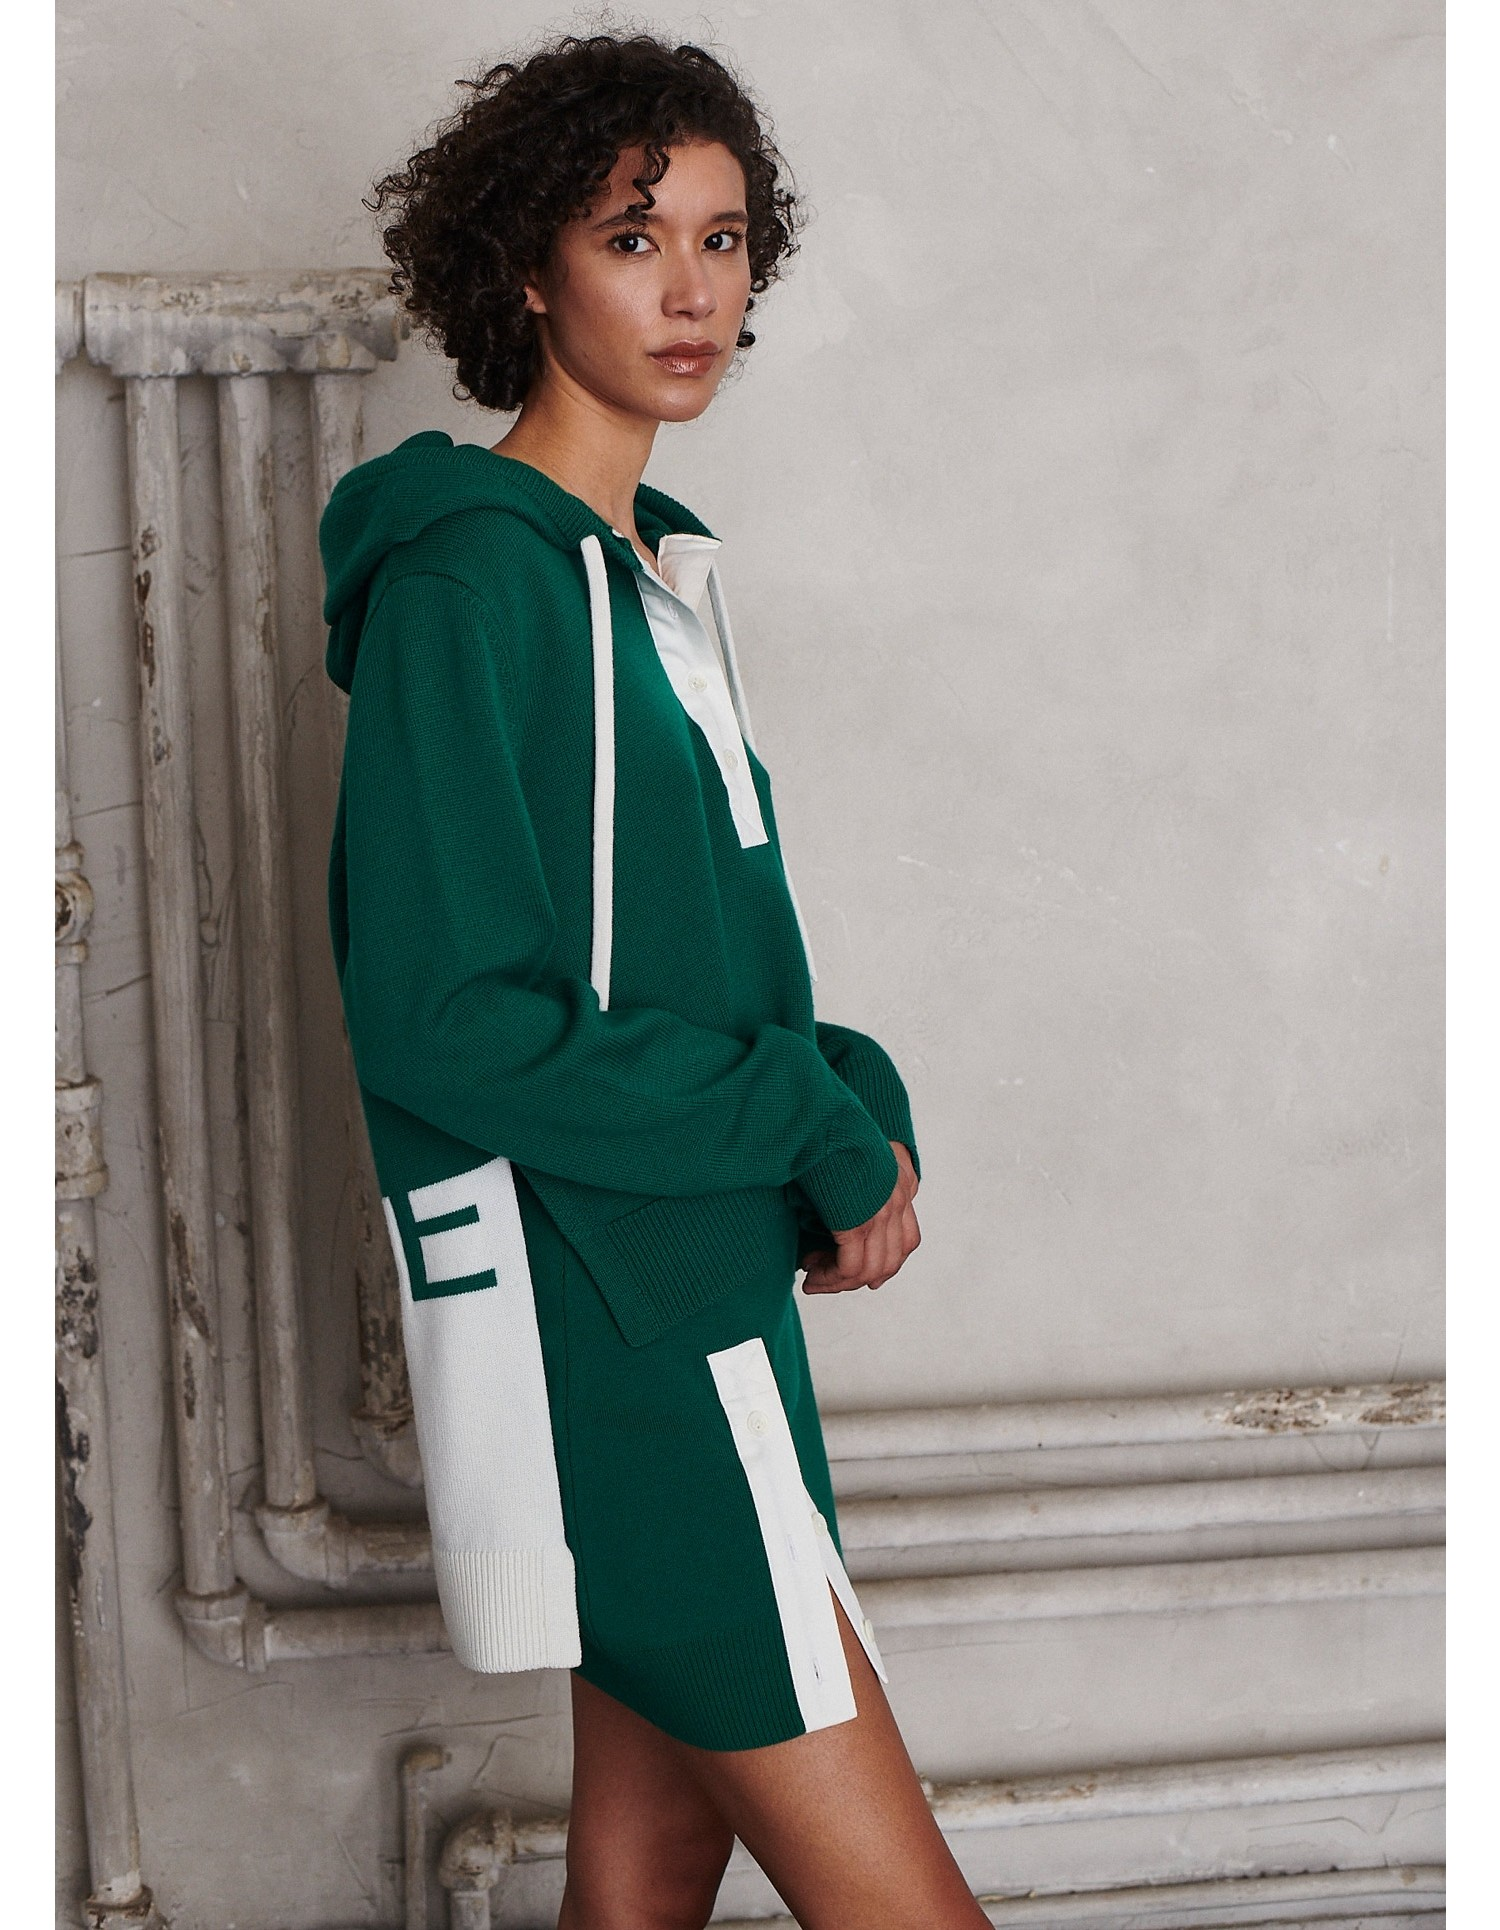 MONSE Rugby Knit Hoodie in Grass and Ivory on Model Side View